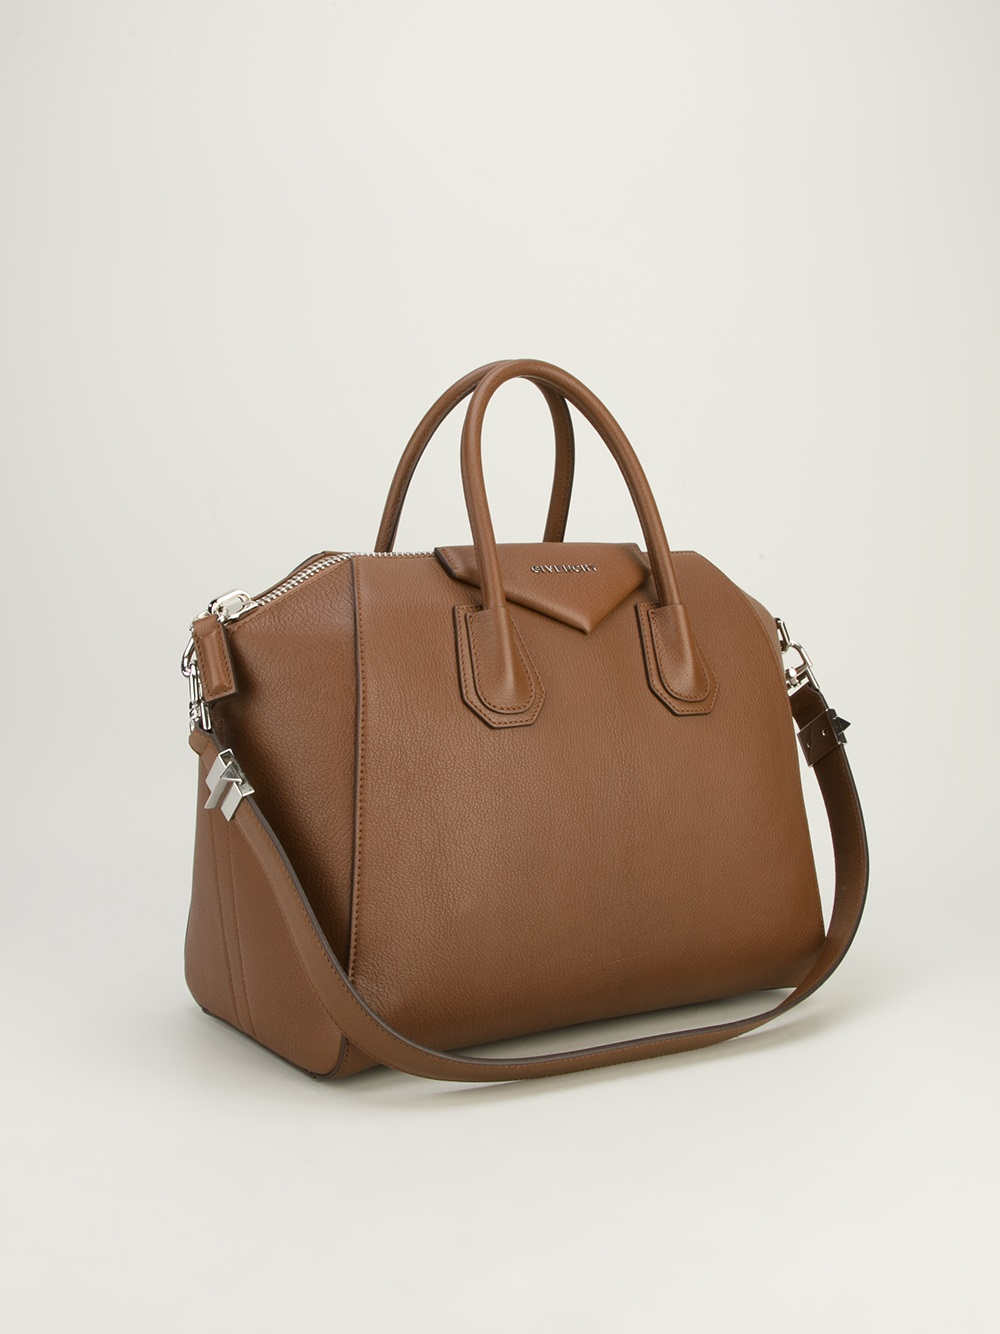 Givenchy Antigona Tote Bag In Brown Lyst